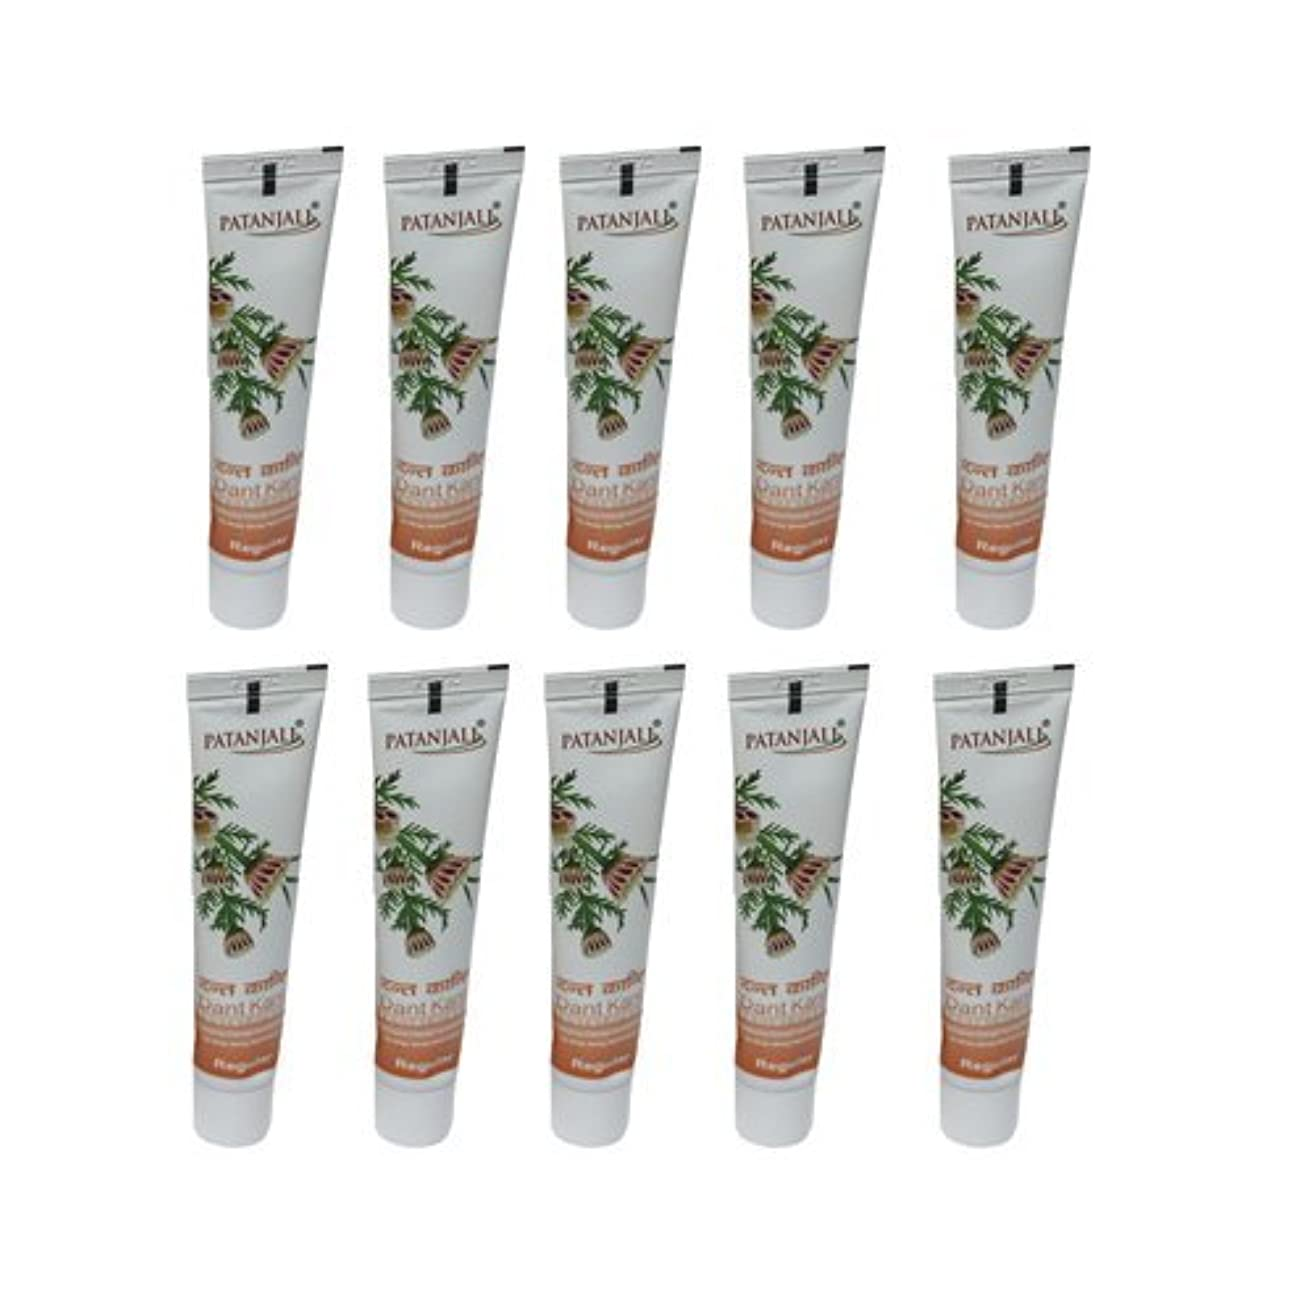 10 x Patanjali Dant Kanti Toothpaste Dental Cream 100gm (Pack of 10) [並行輸入品]